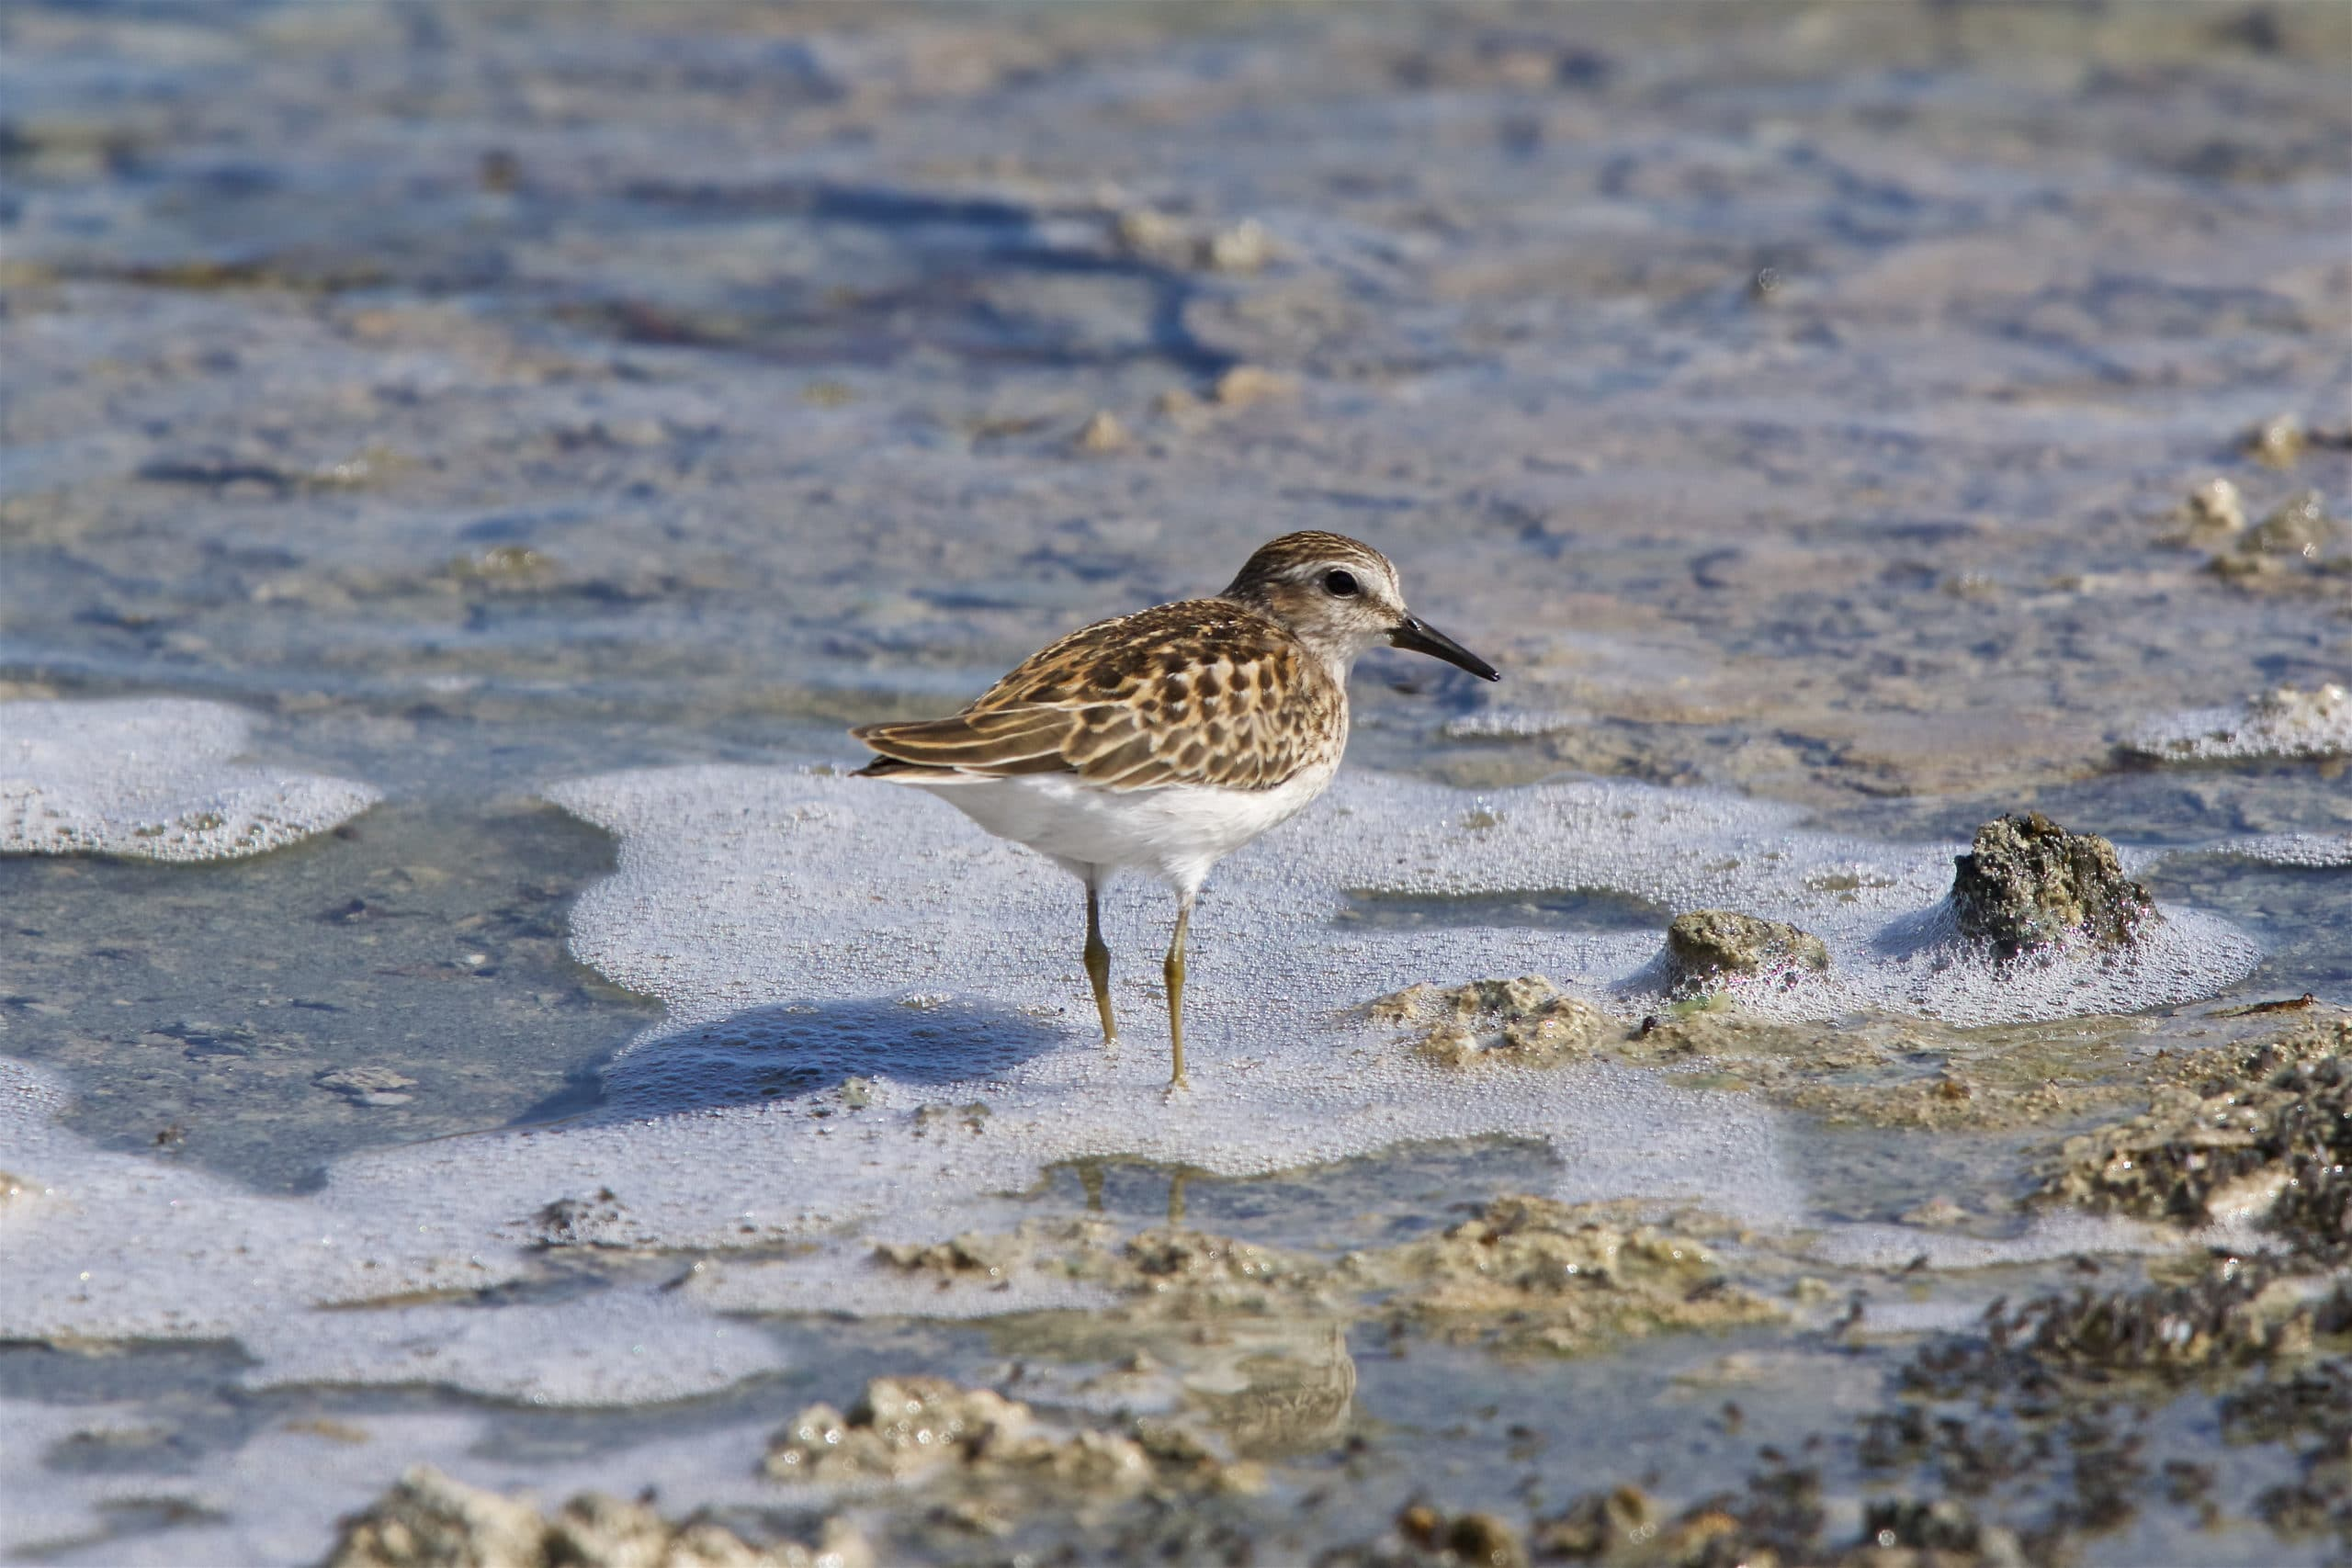 A Least Sandpiper, a shorebird with mottled brown and tan feathers and a short dark bill walking in foamy water at Mono Lake with some alkali flies visible.